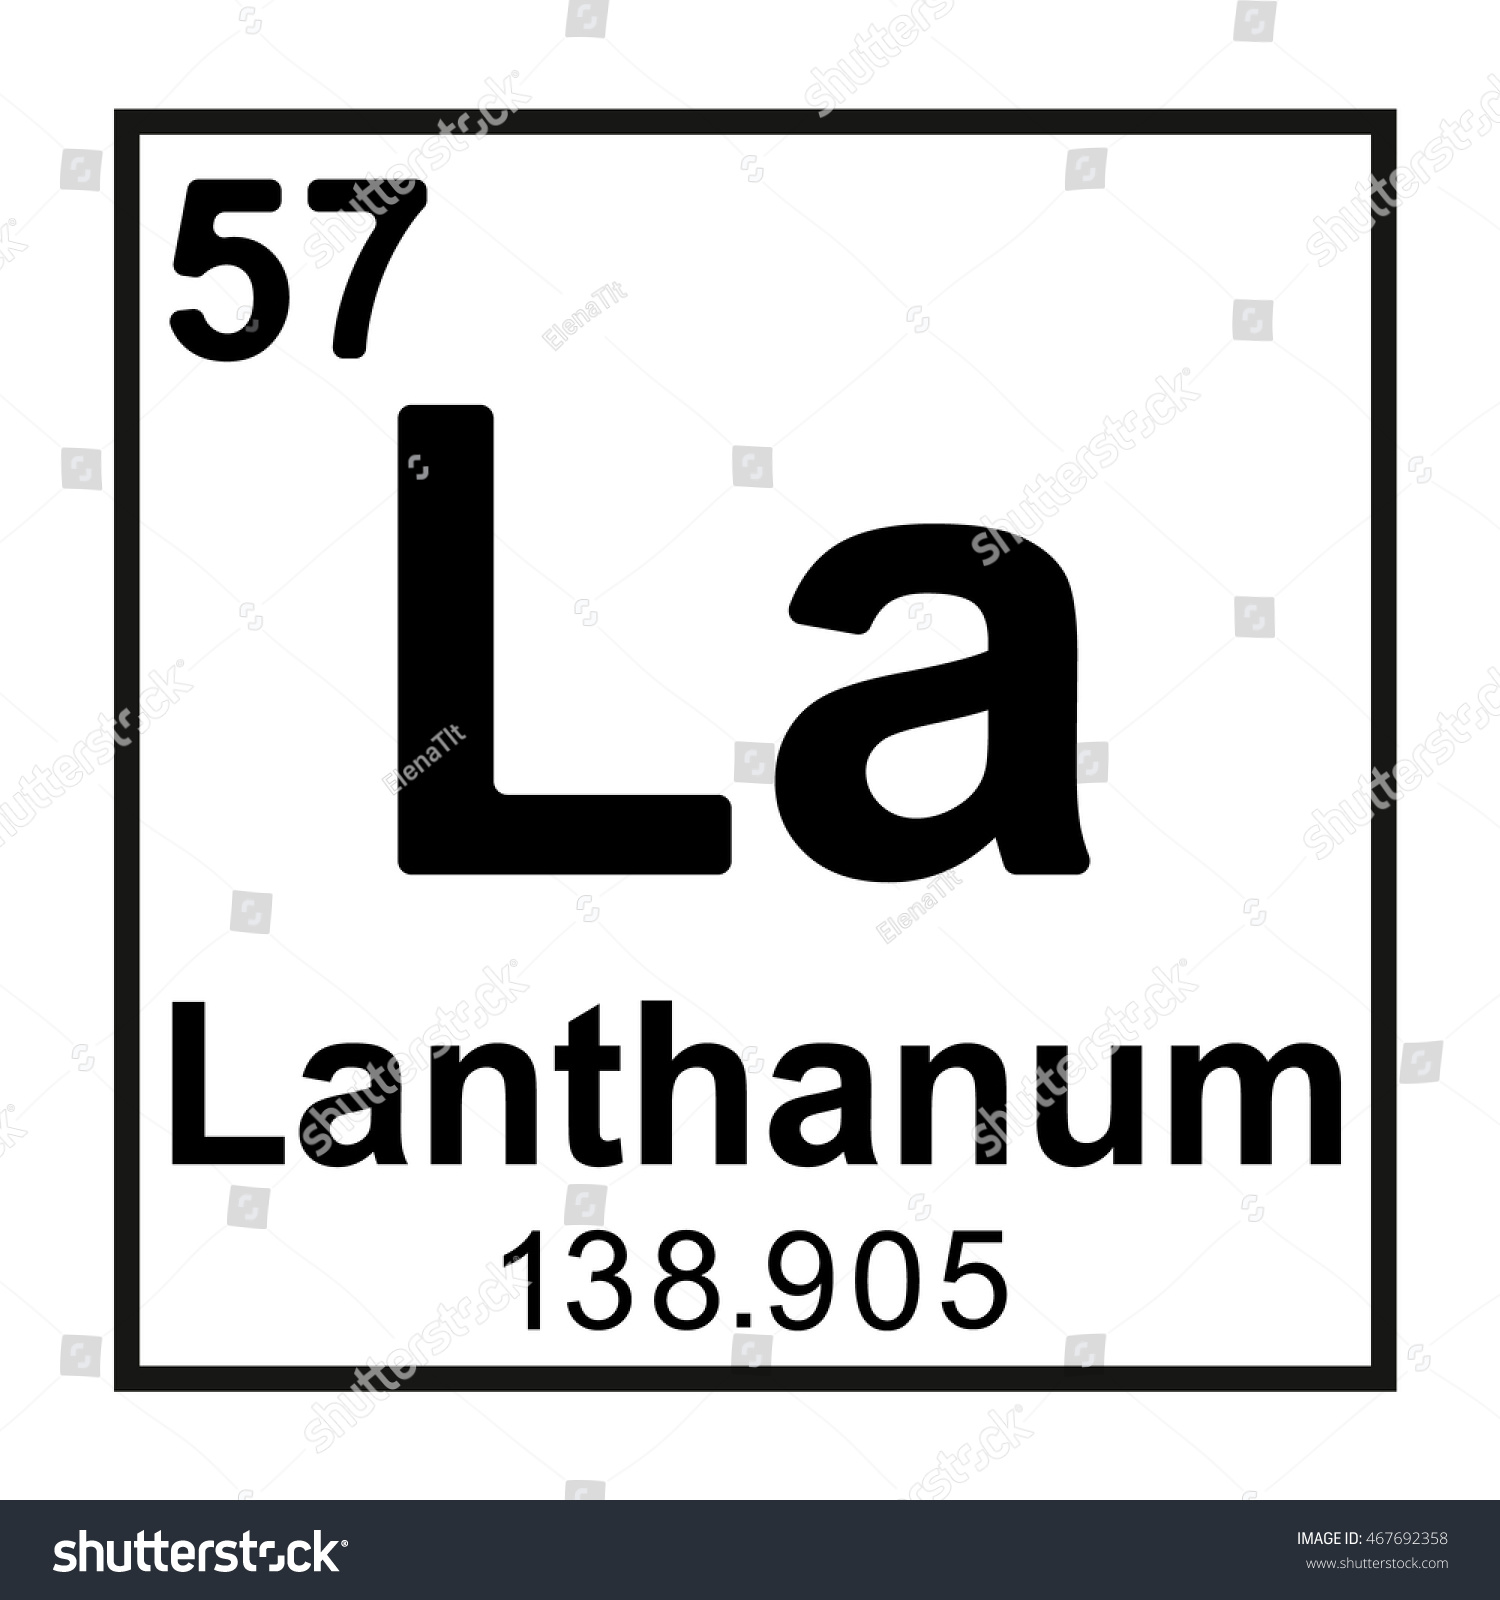 Periodic table element lanthanum stock vector 467692358 shutterstock periodic table element lanthanum gamestrikefo Gallery